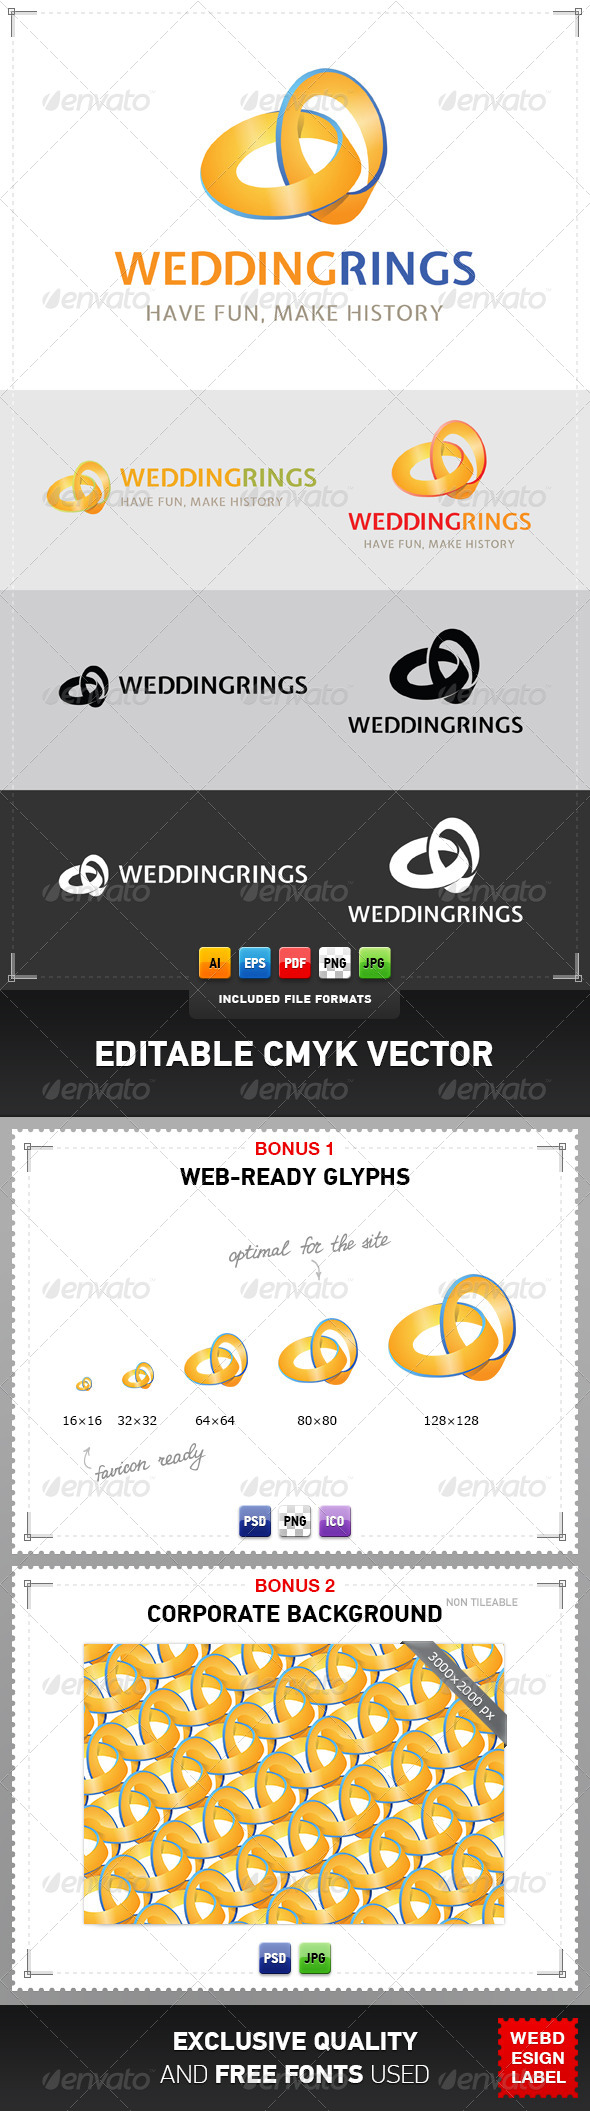 GraphicRiver Wedding Rings Logo 4079425